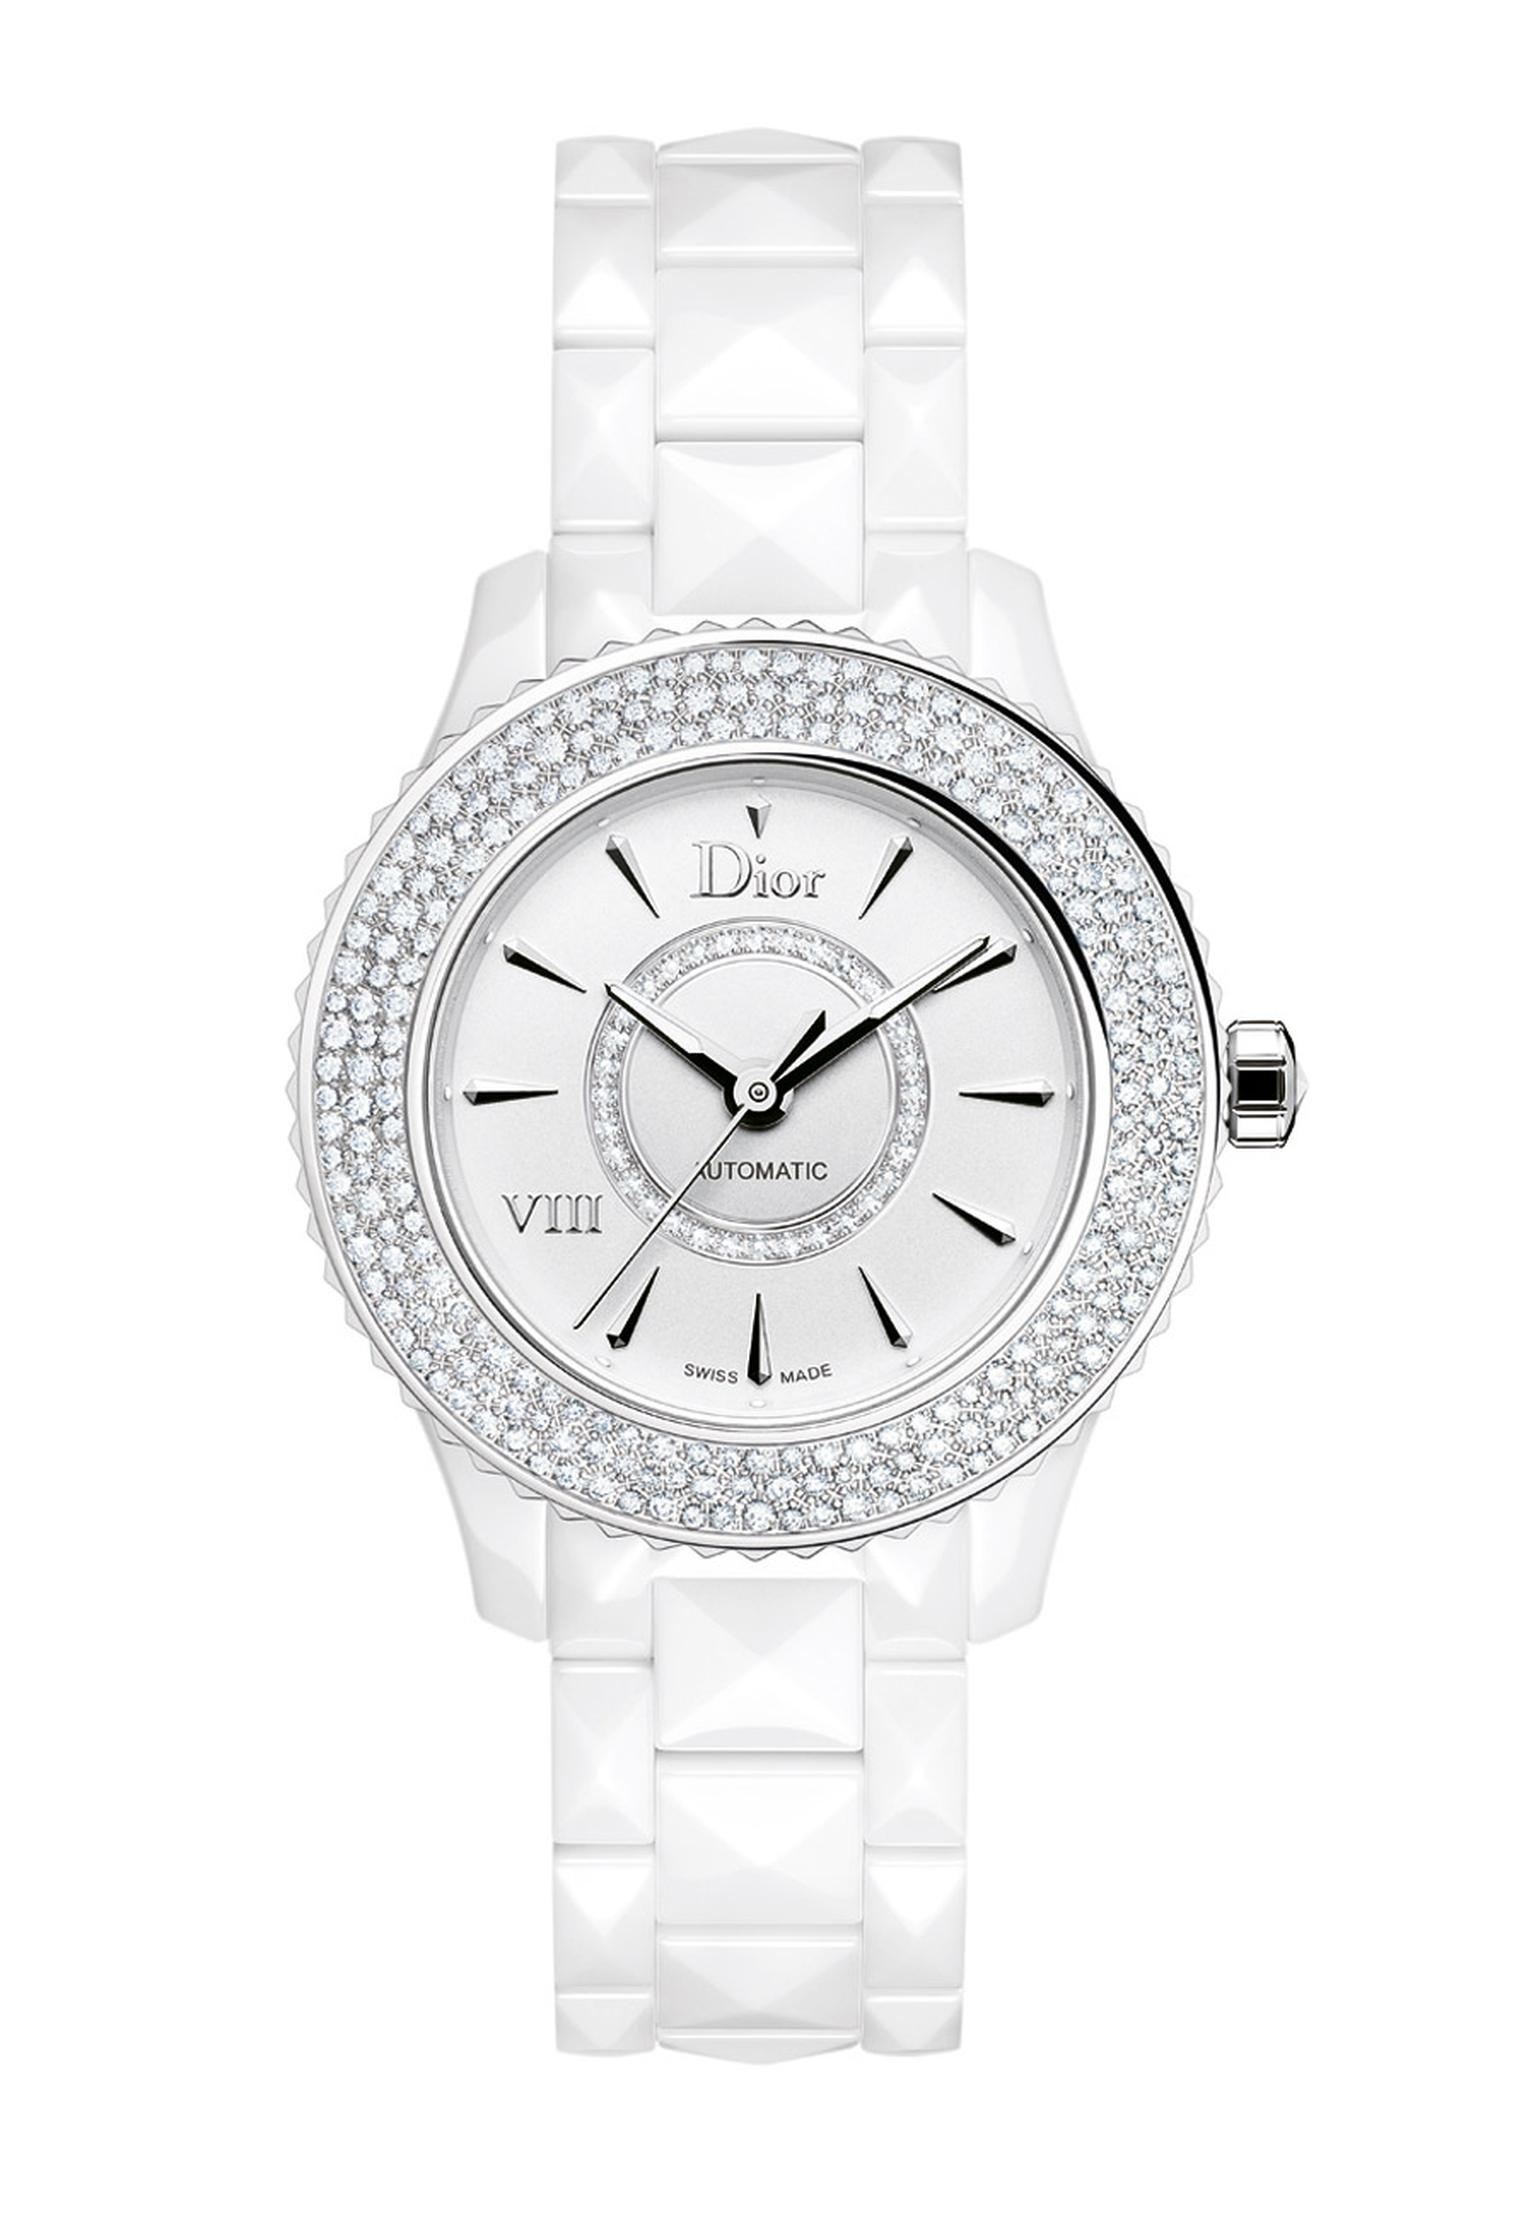 DIOR-VIII-WHITE-AUTO-DIAMOND-SNOW-SET-BEZEL-38mm.jpg